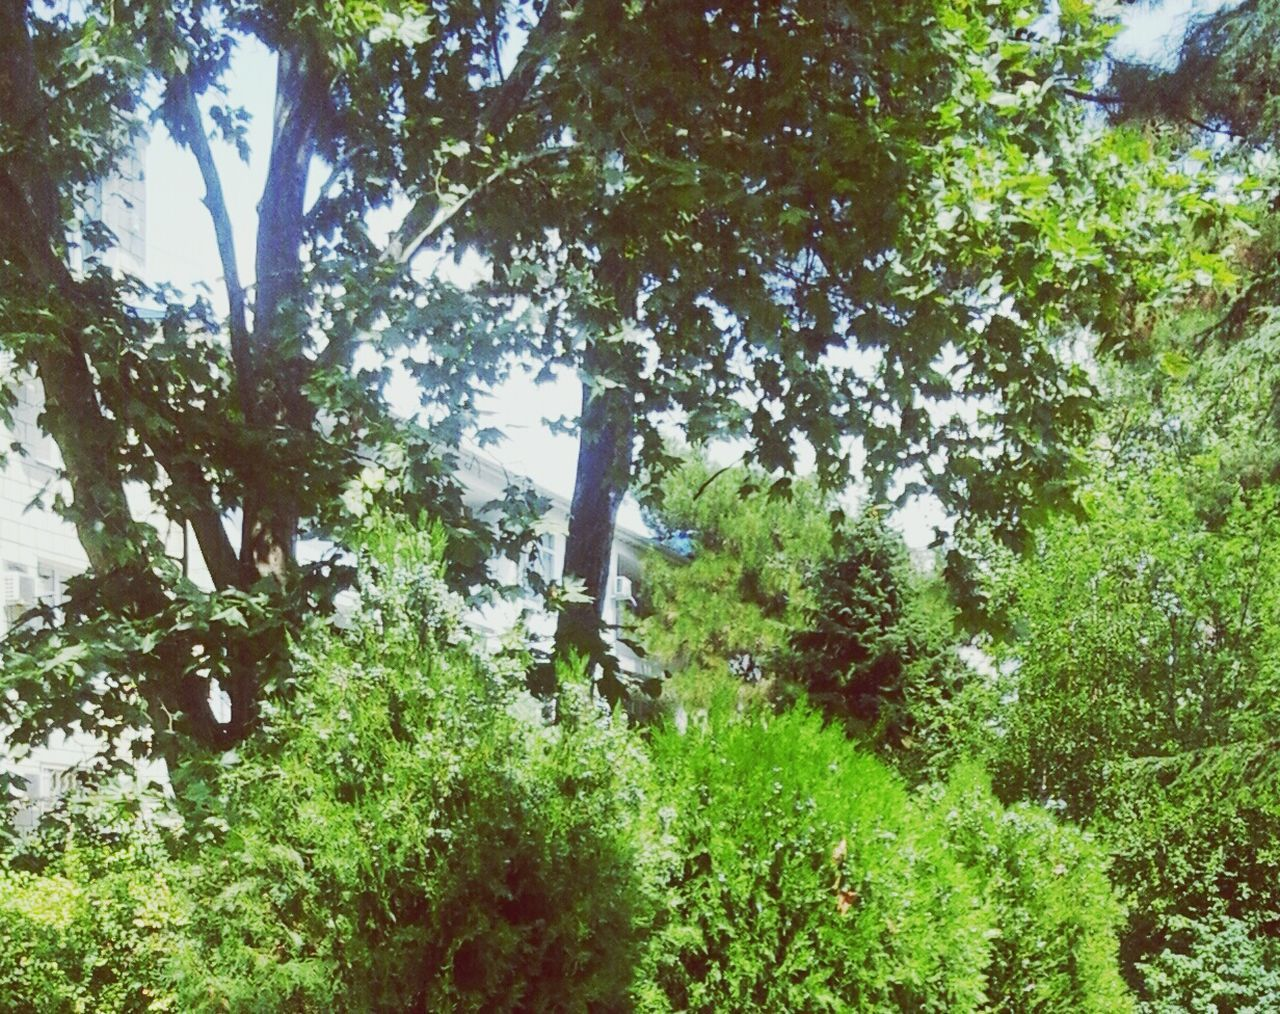 tree, growth, nature, green color, day, beauty in nature, tranquility, forest, no people, tranquil scene, outdoors, lush foliage, plant, scenics, leaf, branch